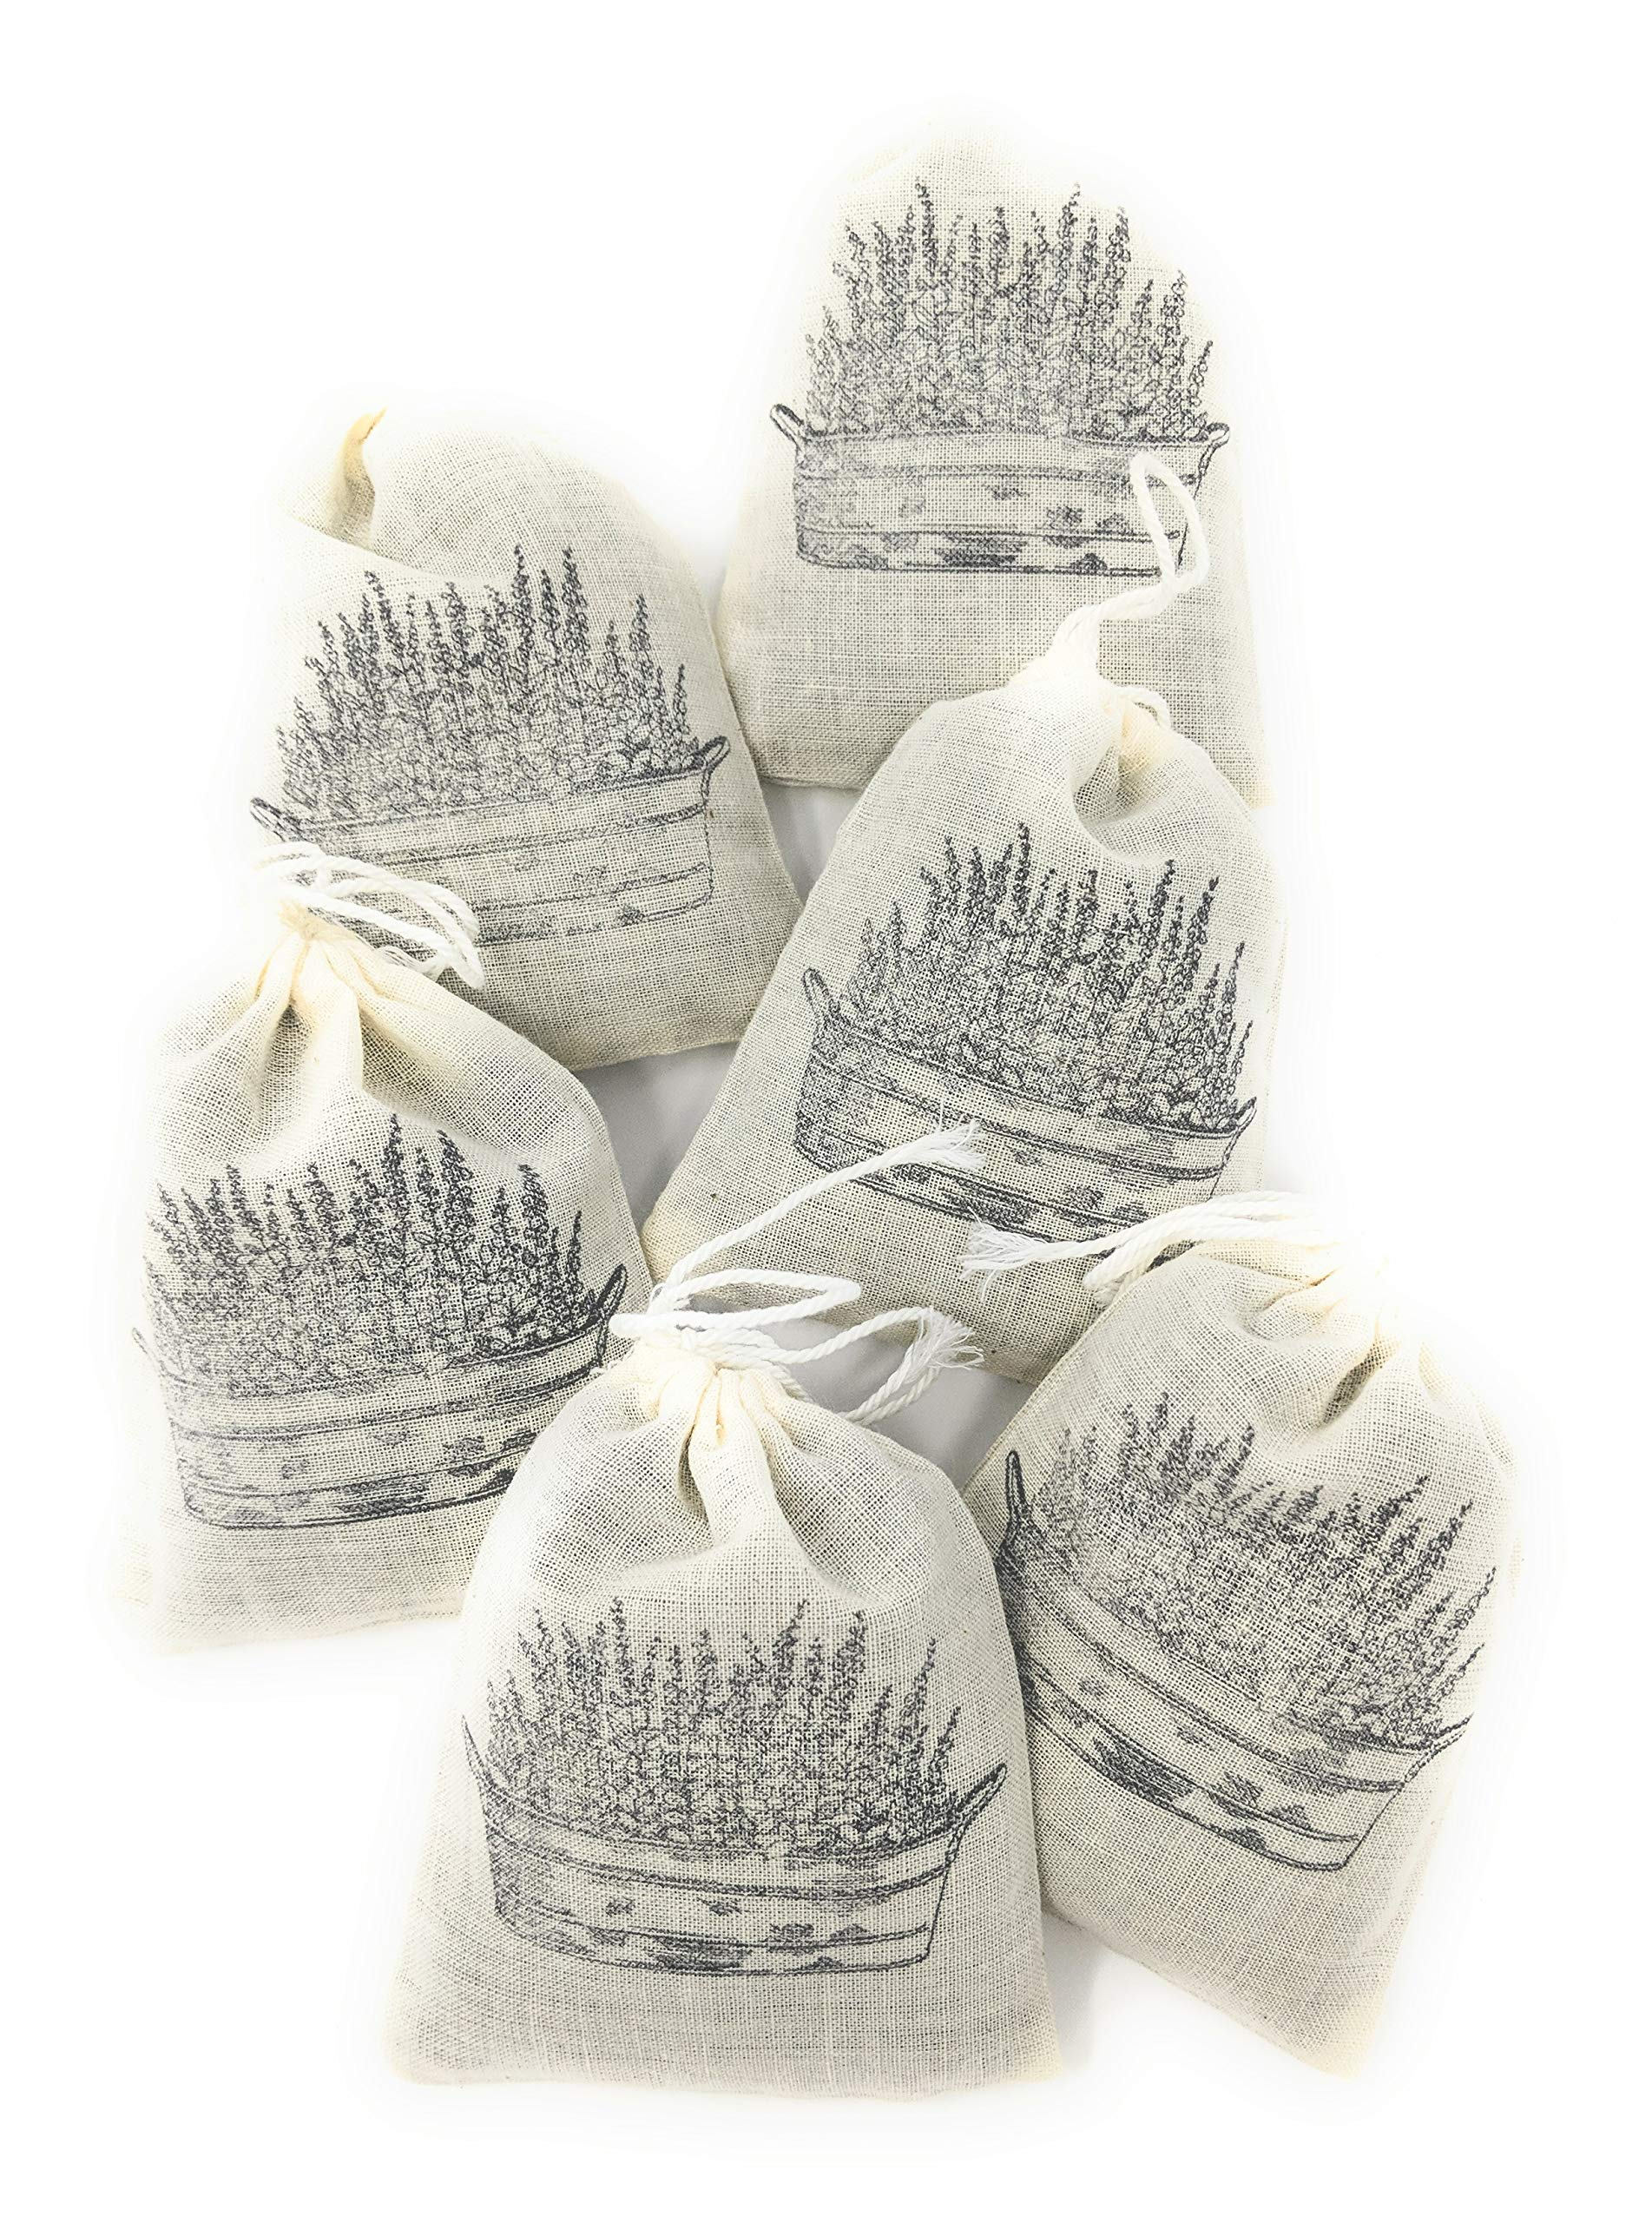 Lightrock Farms Lavender Sachets, Dried Lavender in Natural Cotton Bags (6 Pack) by Lightrock Farms